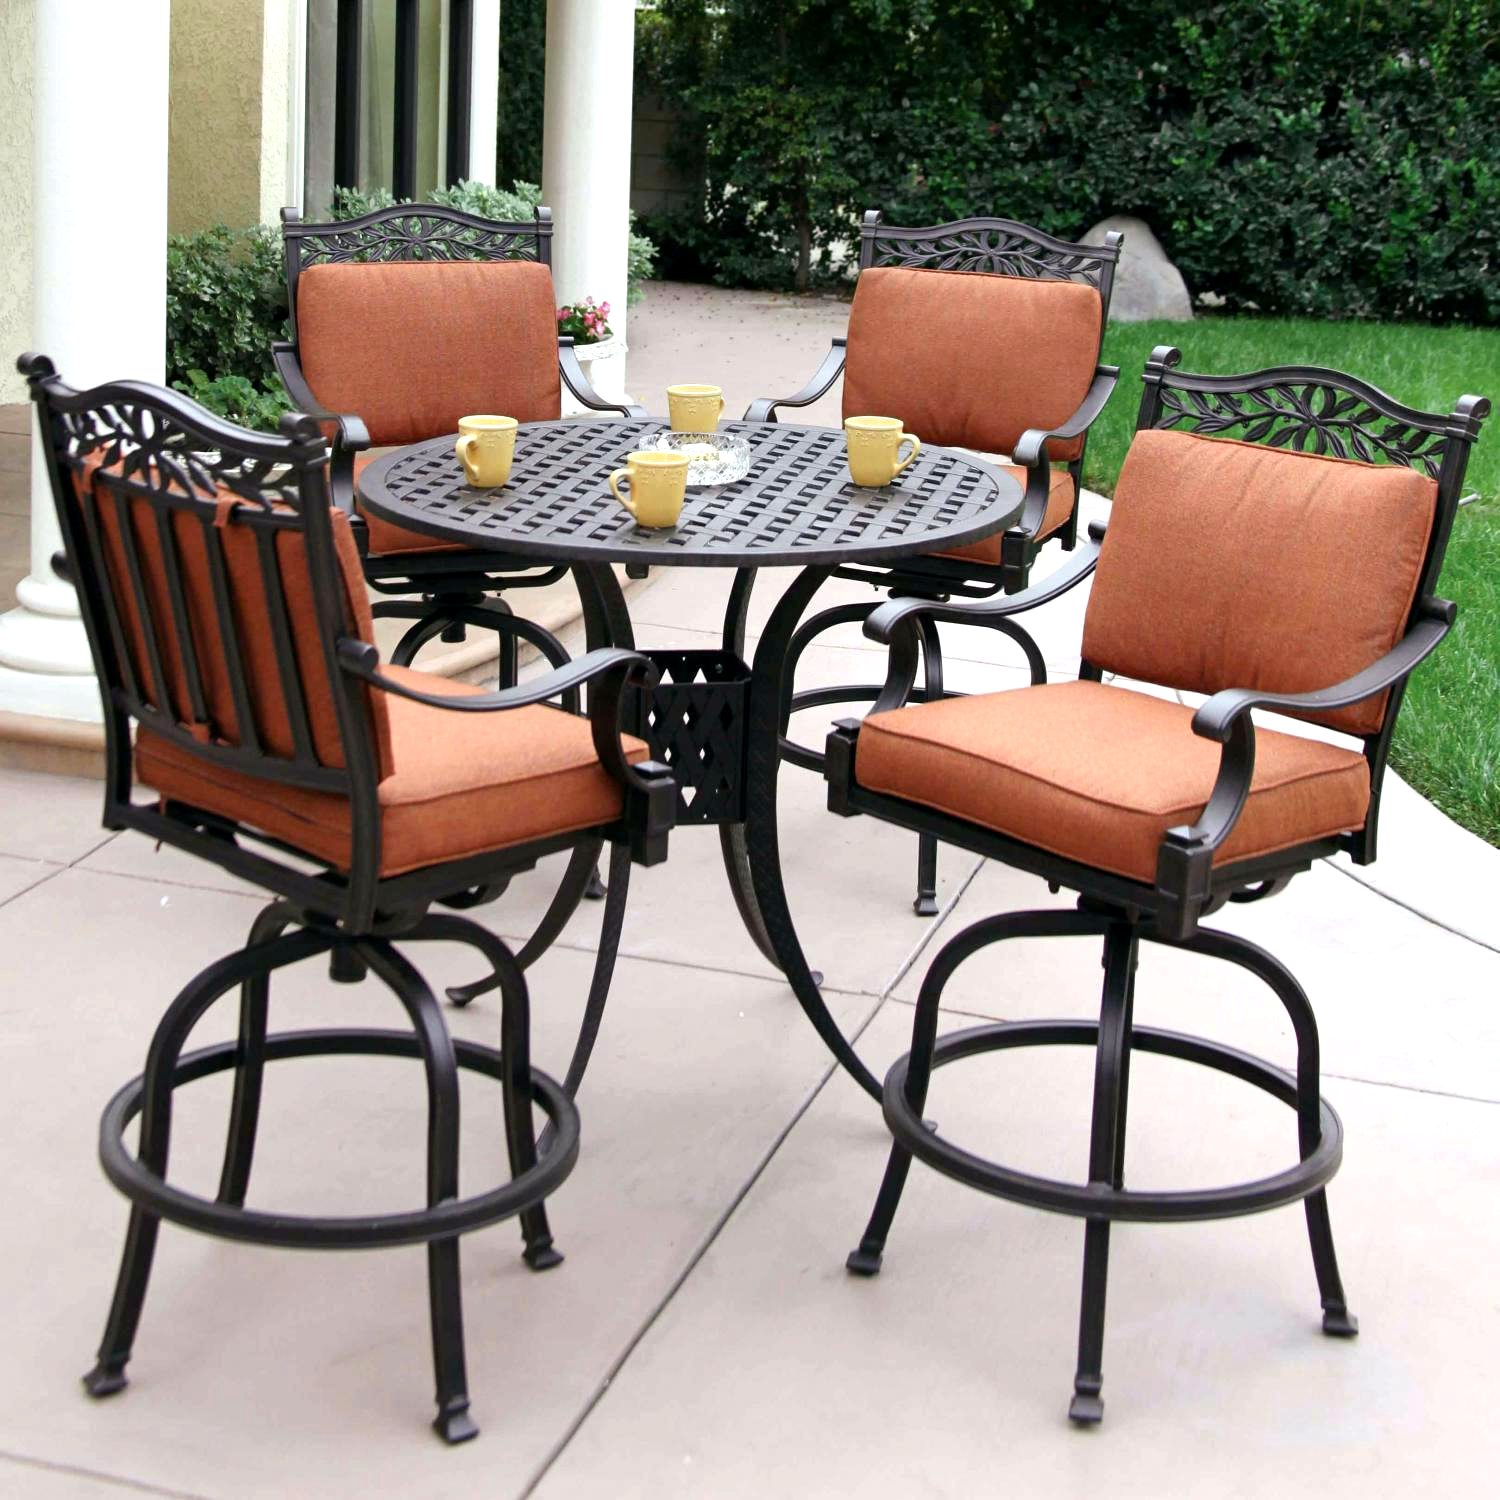 Patio Furniture Covers Ollies Unique Walmart Patio Furniture Bq Egg inside proportions 1500 X 1500